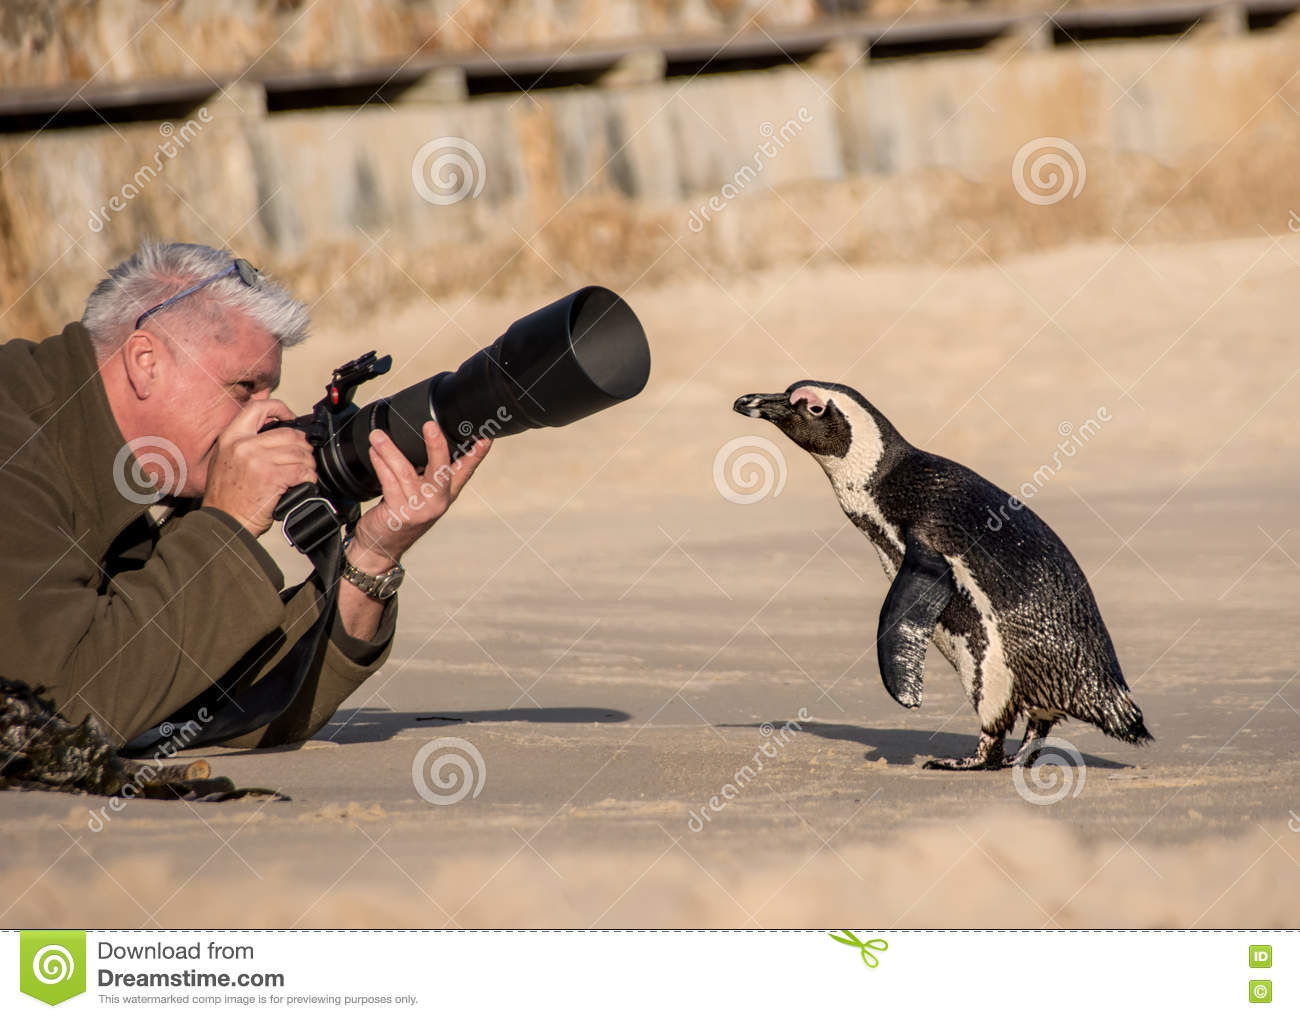 5b9d3d74d63 A curious Penguin goes for a closer look at a male photographer on a beach  in Africa